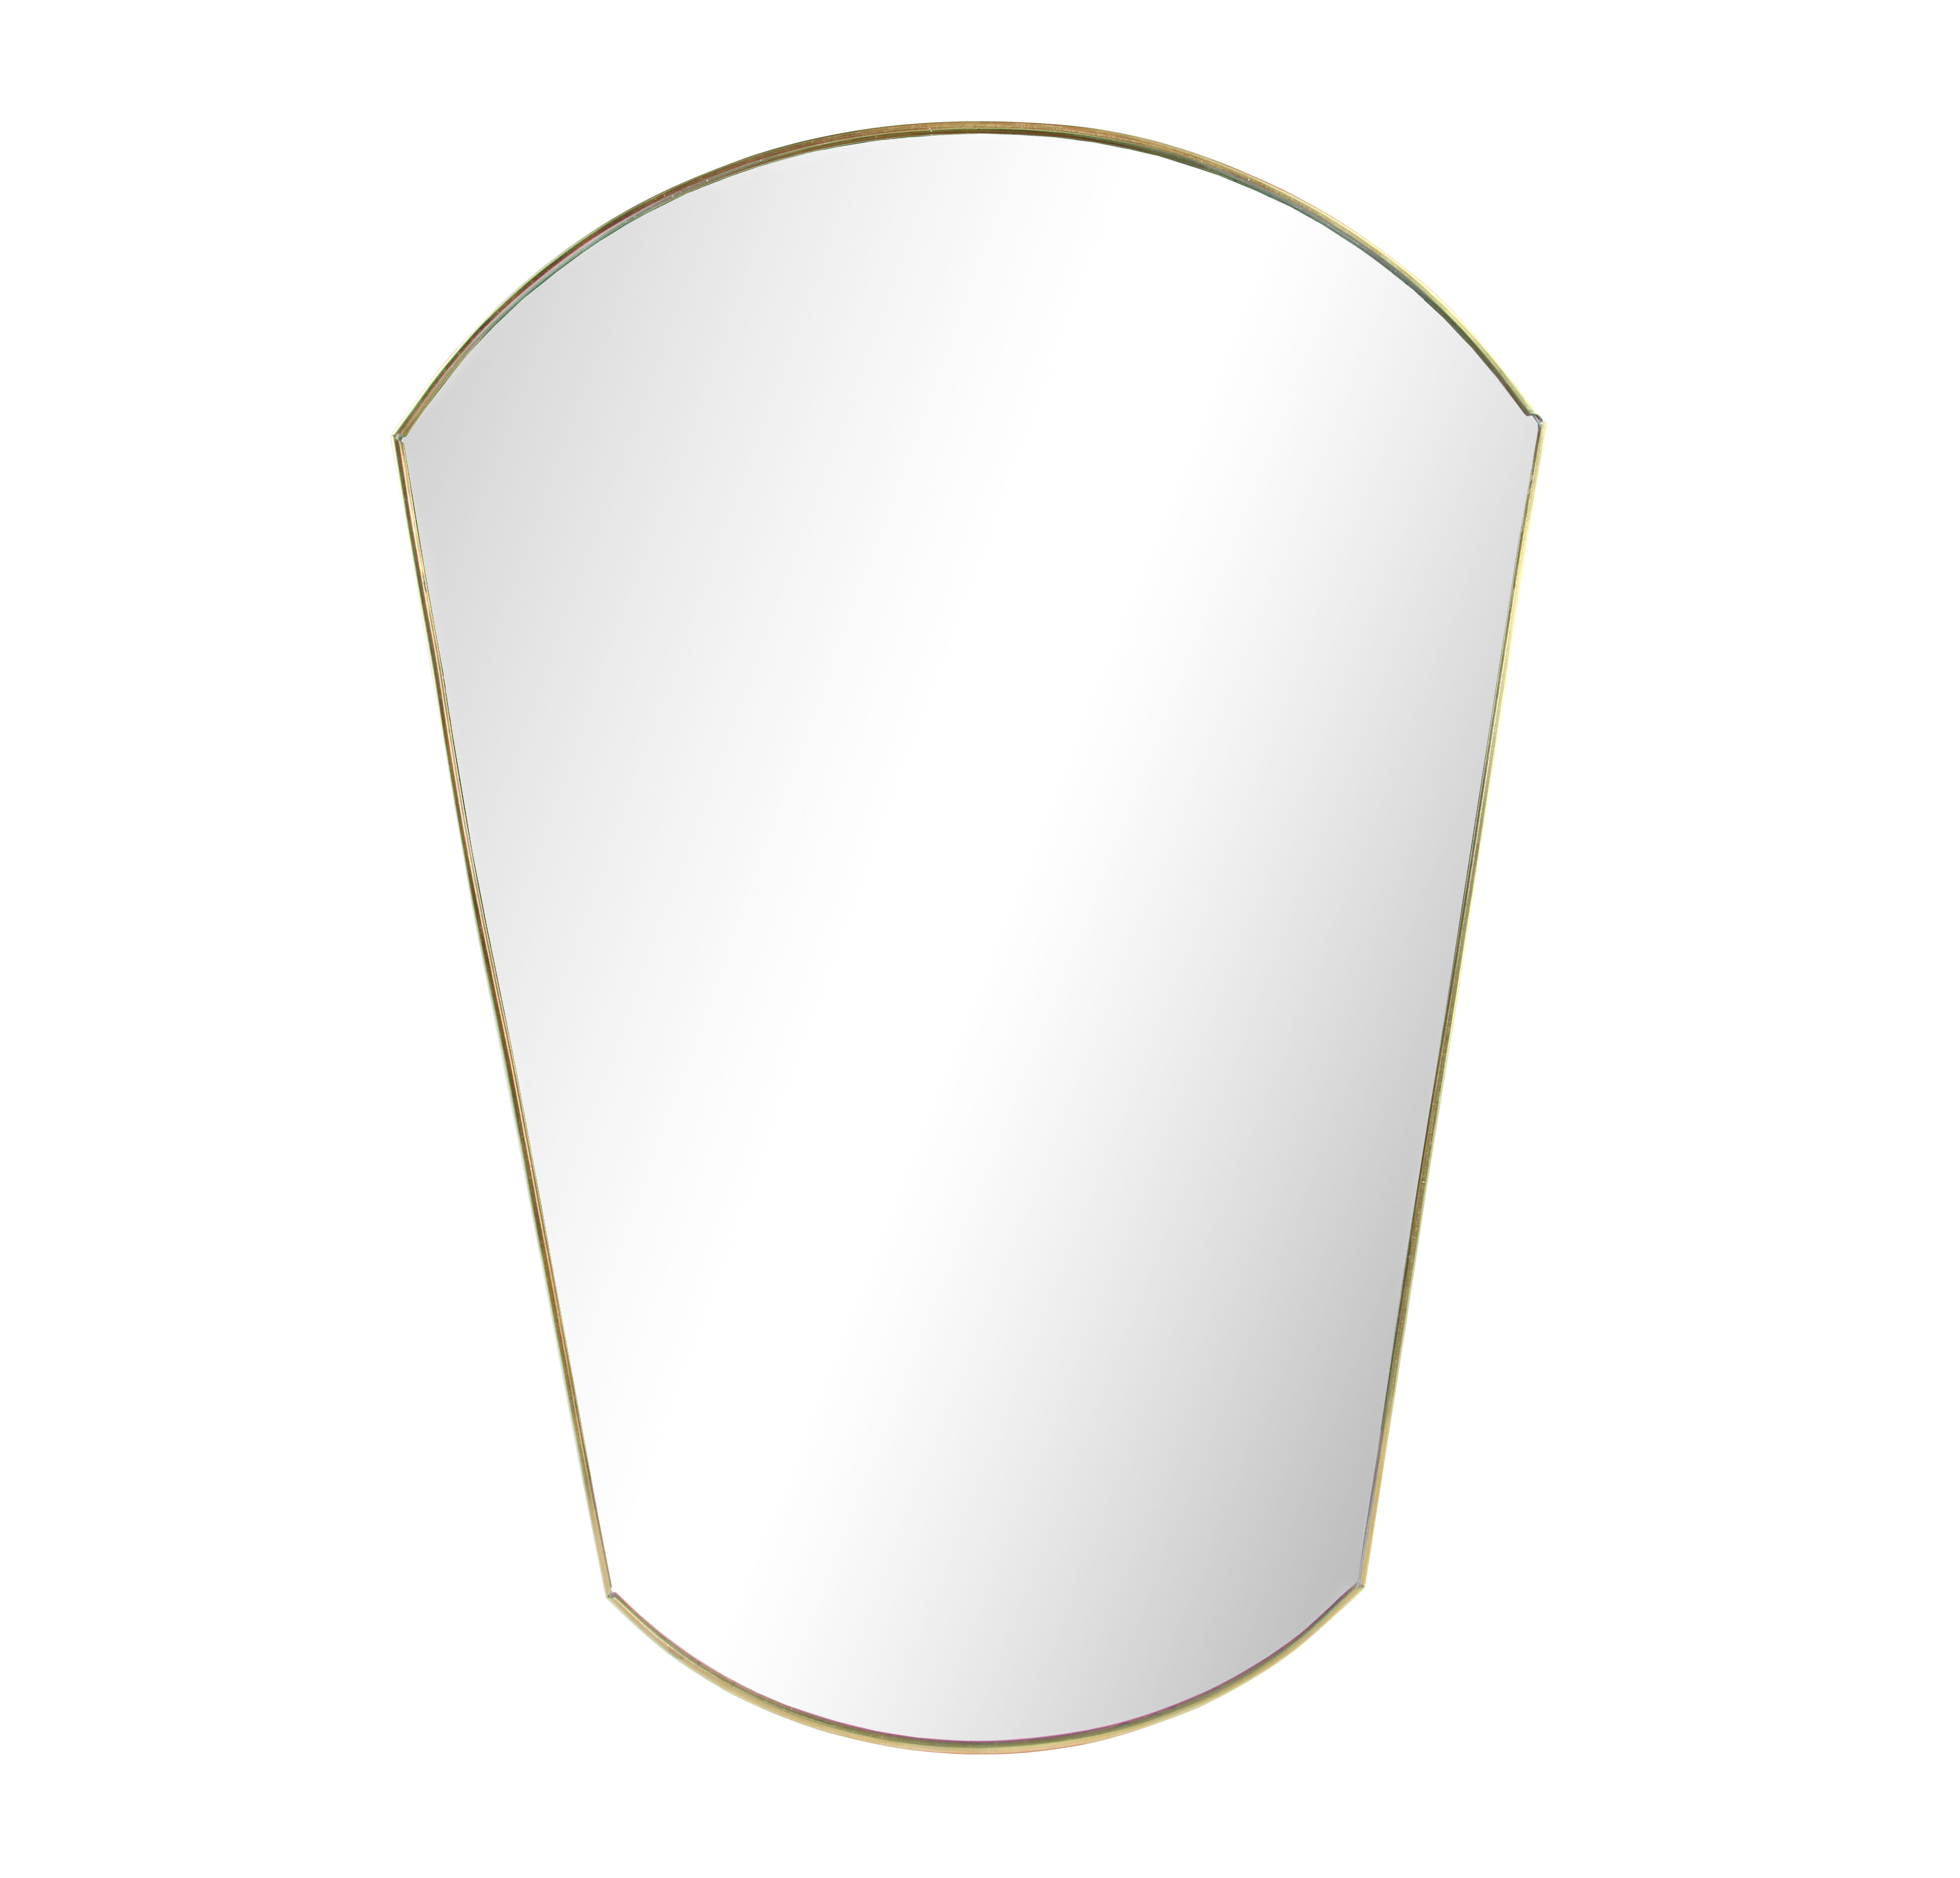 Decoration - Mirrors - Gold Oval Wall mirror - / L 30 x H 43 cm by & klevering - Oval / Brass - Glass, Metal